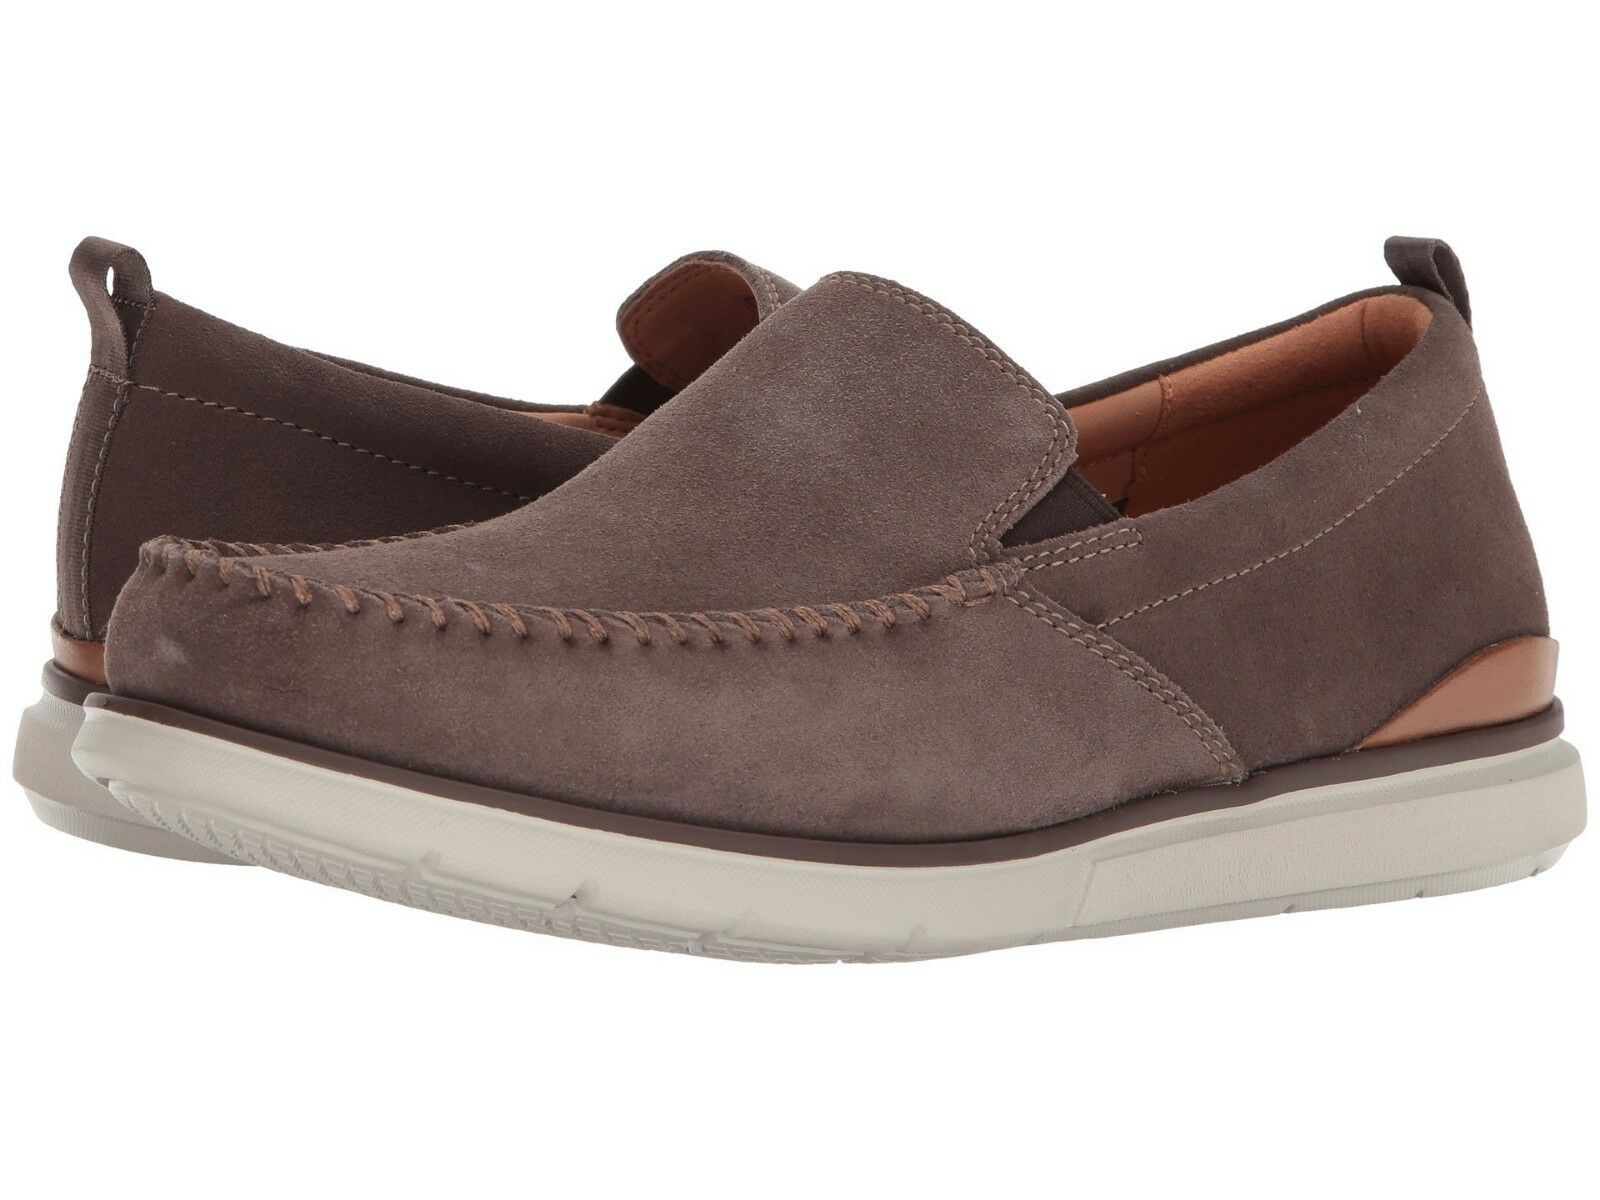 Men's Shoes Clarks Edgewood Step Casual Slip On 32498 Taupe Suede *New*